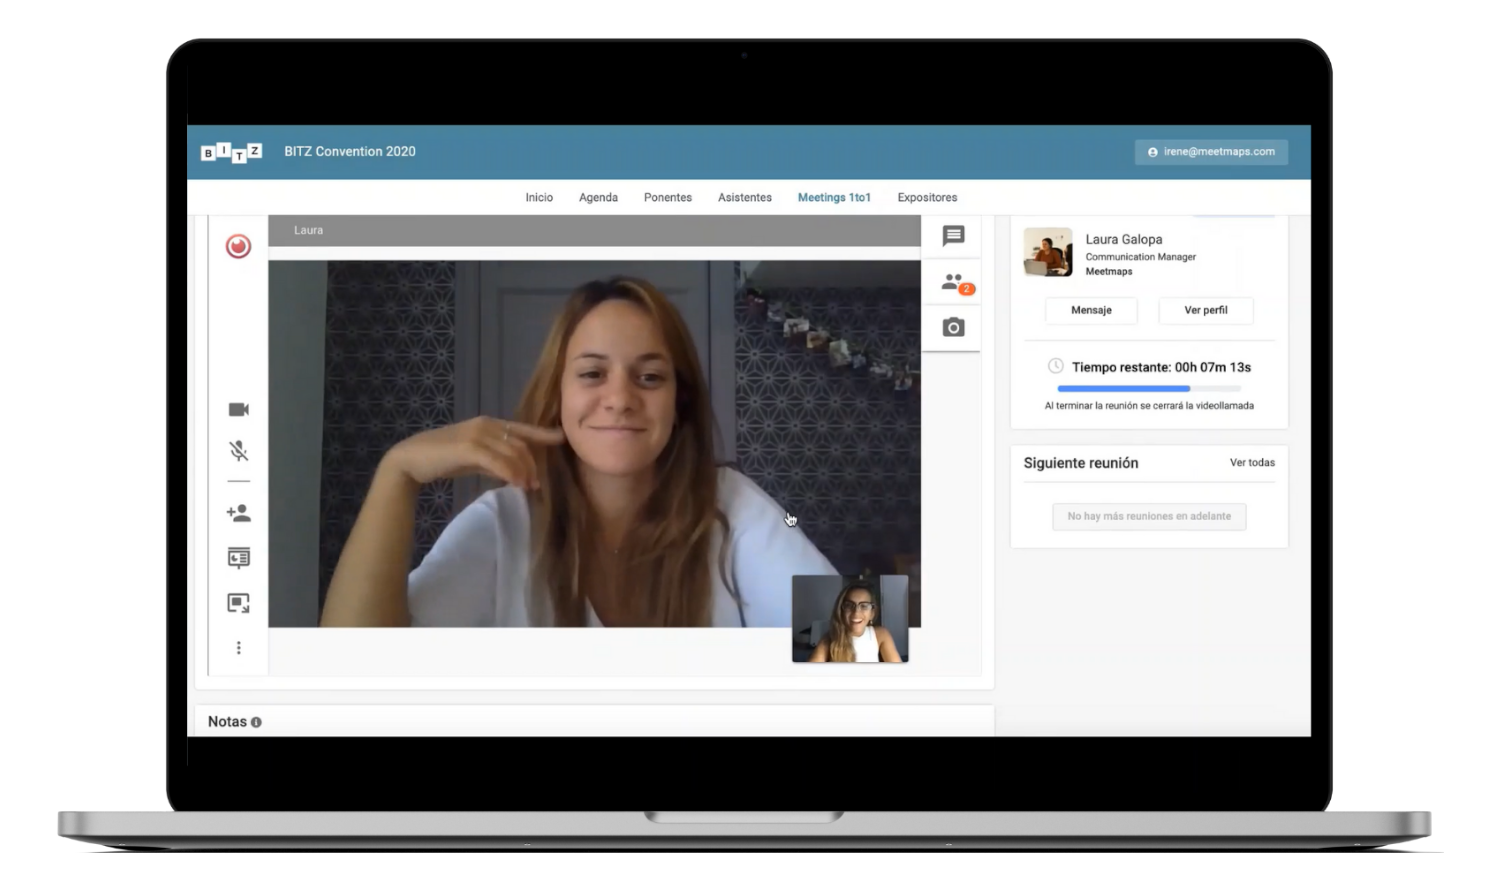 Video call management system for meetmaps events